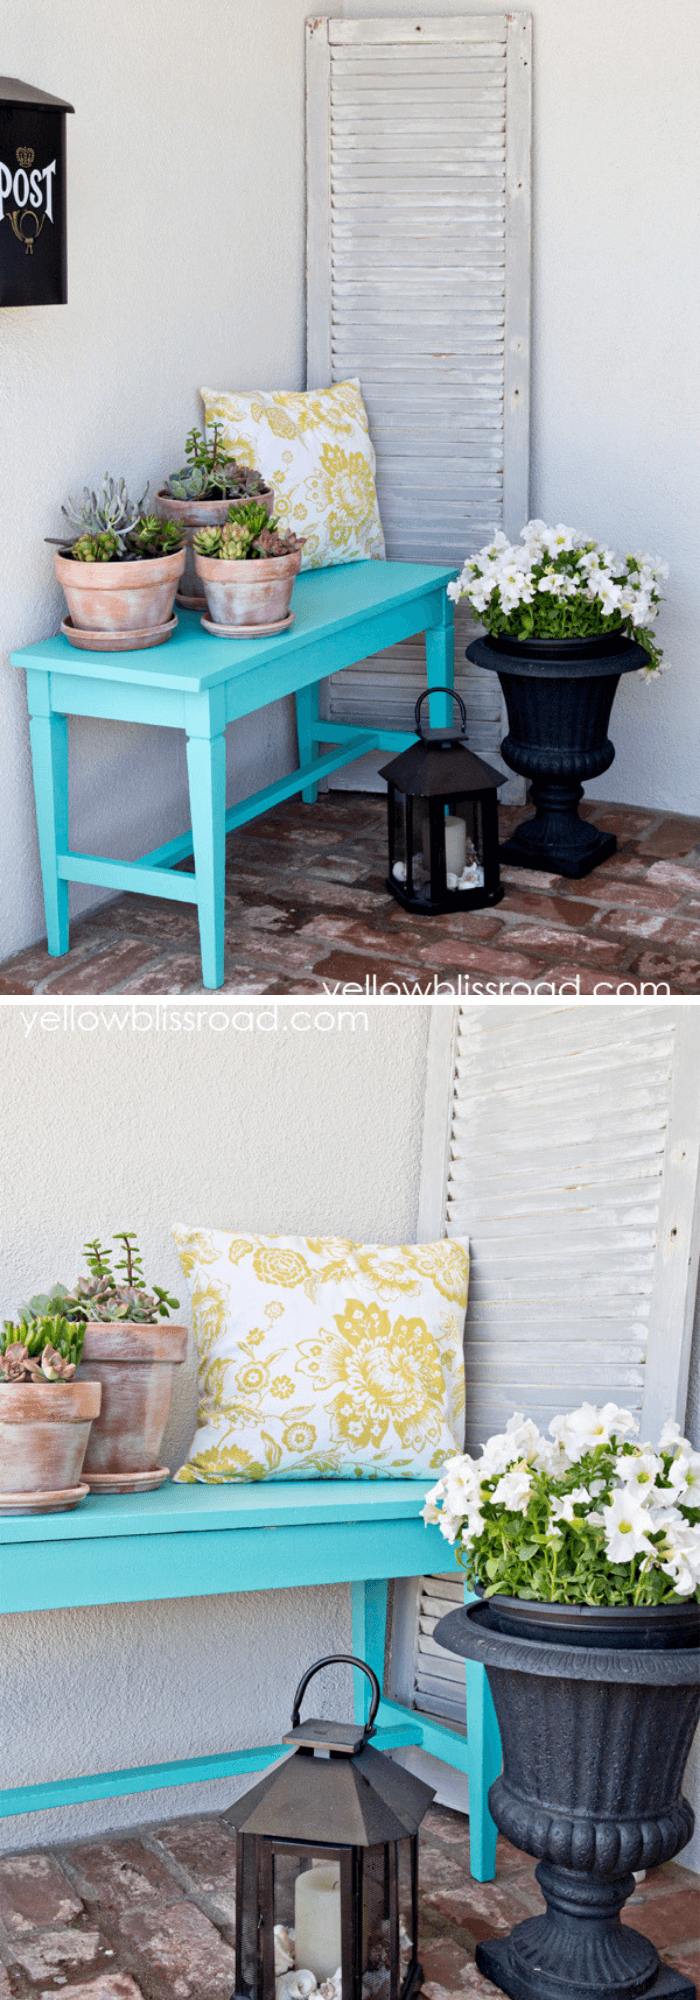 Old Shutter Outdoor Decor Ideas Summer Porch with white shutters and succulents